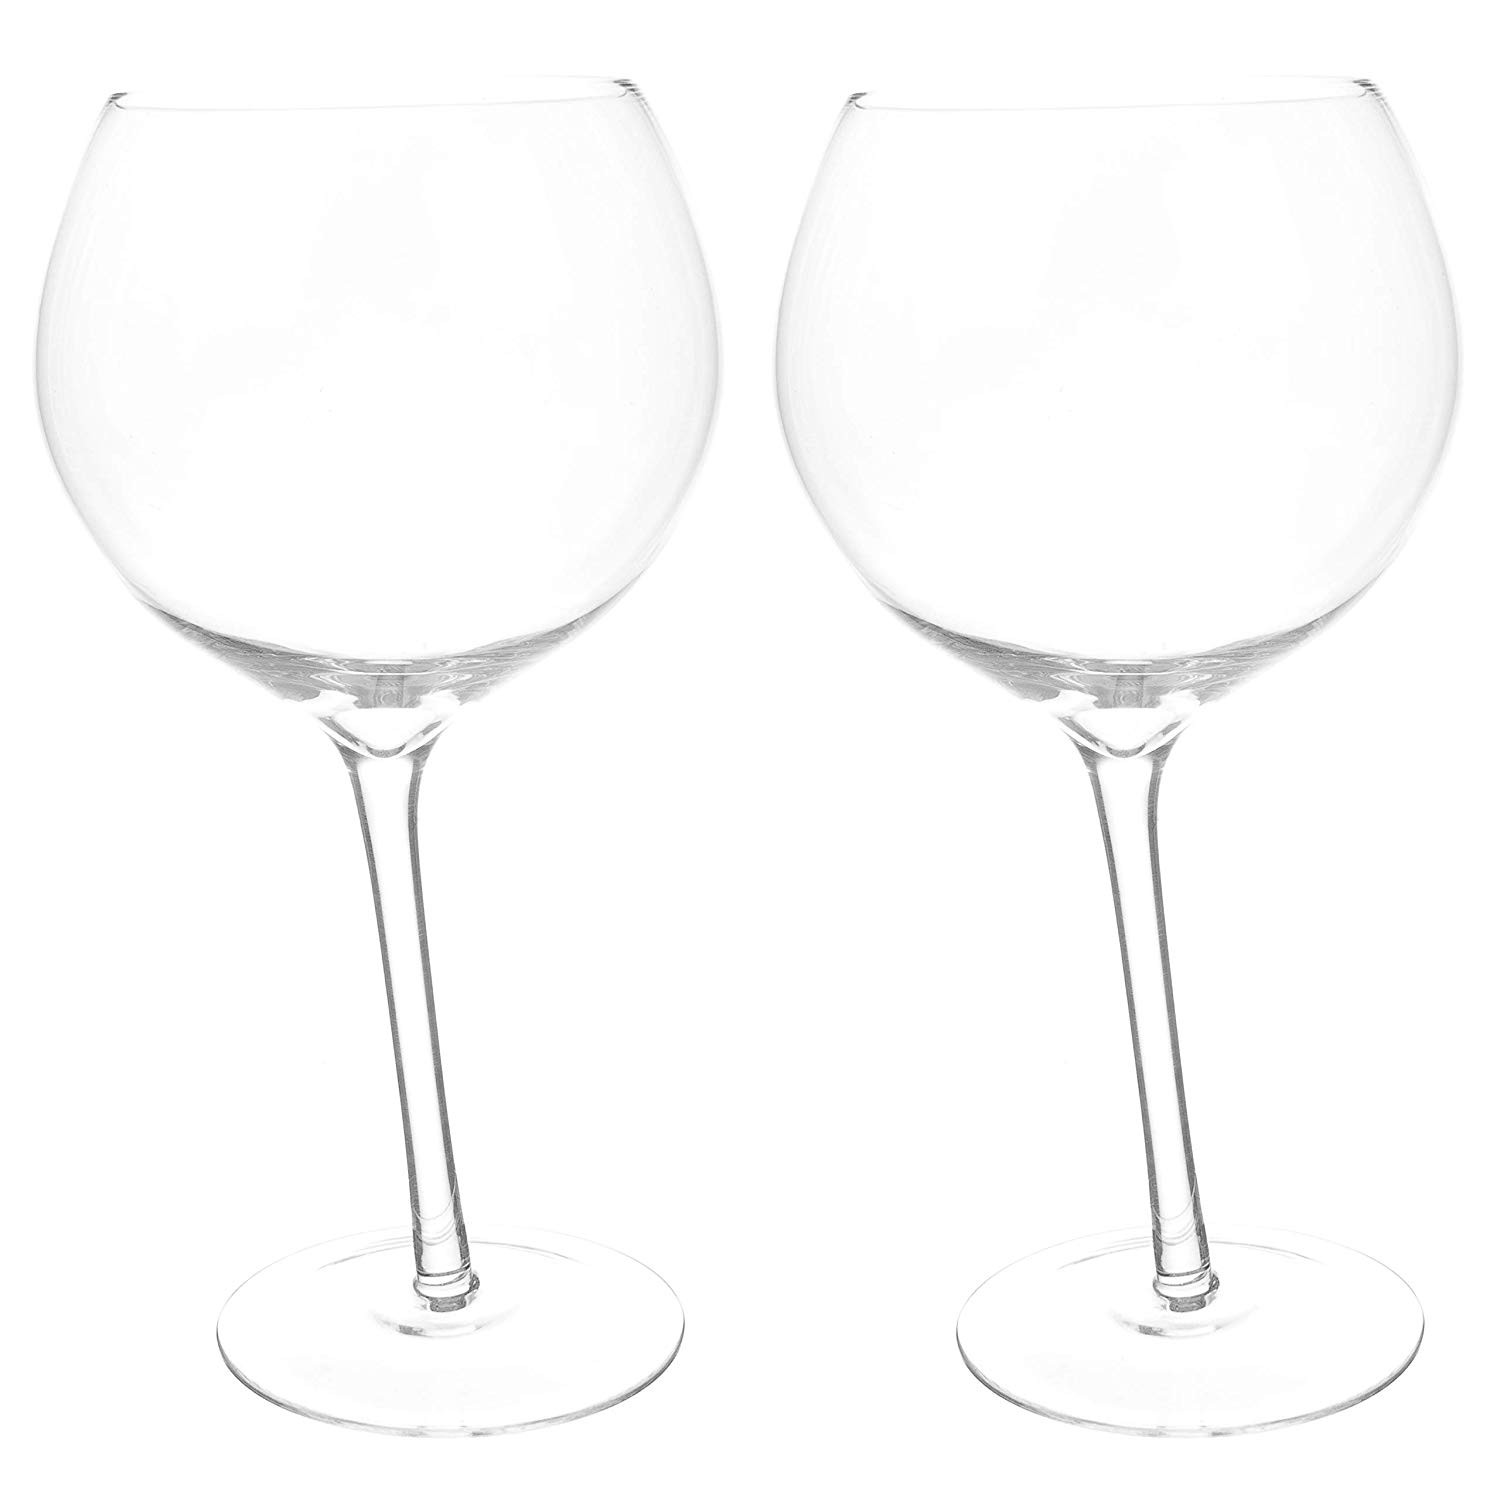 extra large crystal vase of 2x large wonky gin and tonic glasses tispy gin copa balloon glass regarding fancy a classic gin and tonic glass with an extra twist use these large bowl shaped gin copa balloon glasses to not only enjoy a long refreshing drink and